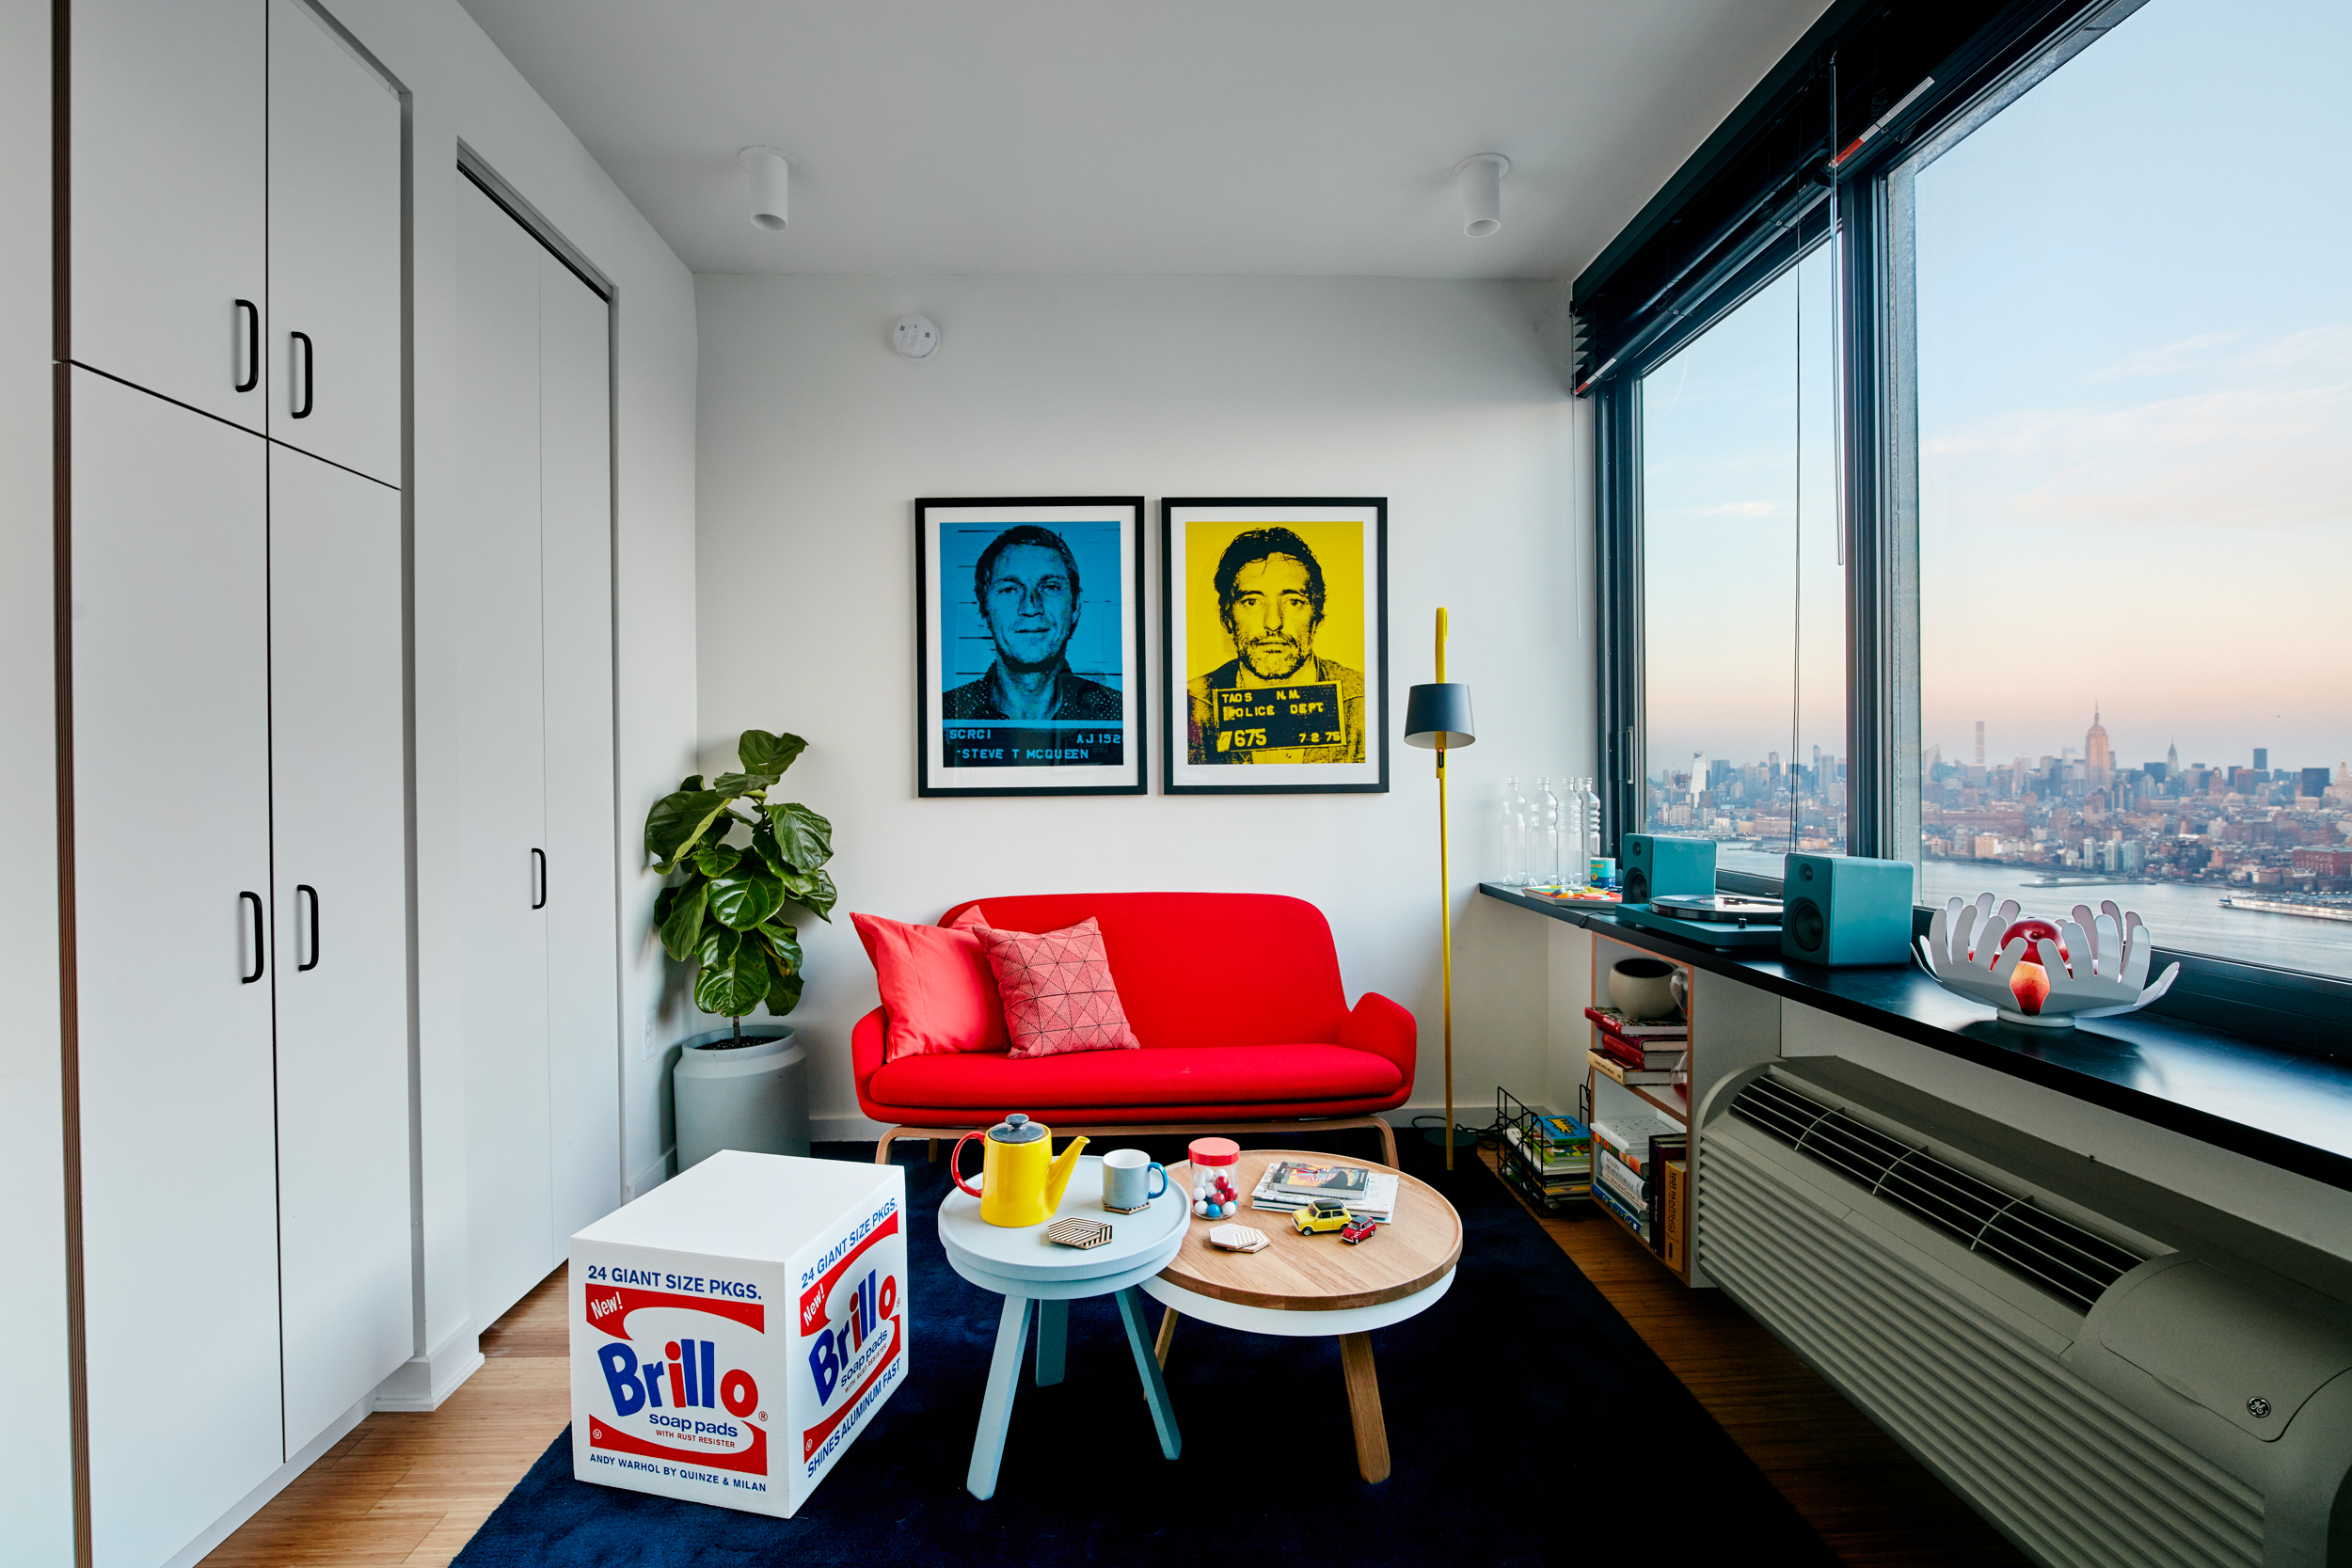 Studio Apartment Jersey City Nj rentals at urby's jersey city skyscraper hit the market from